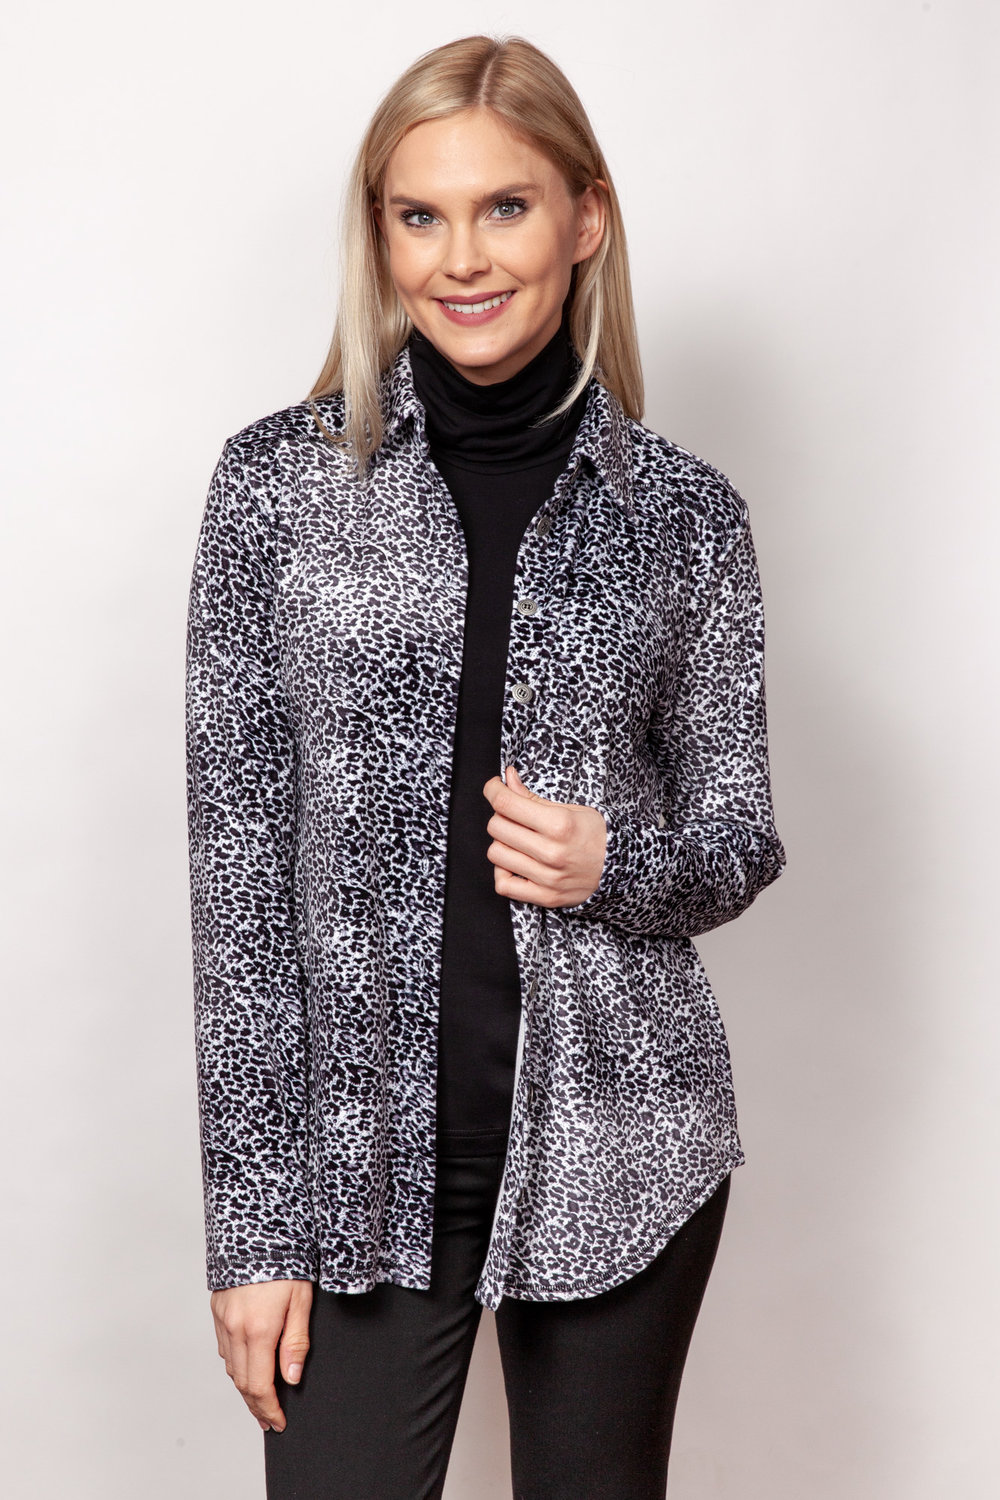 Copy of Style # 92379-19, p13 <br/>Micro Fleece Cheetah <br/>Pattern: Cheetah